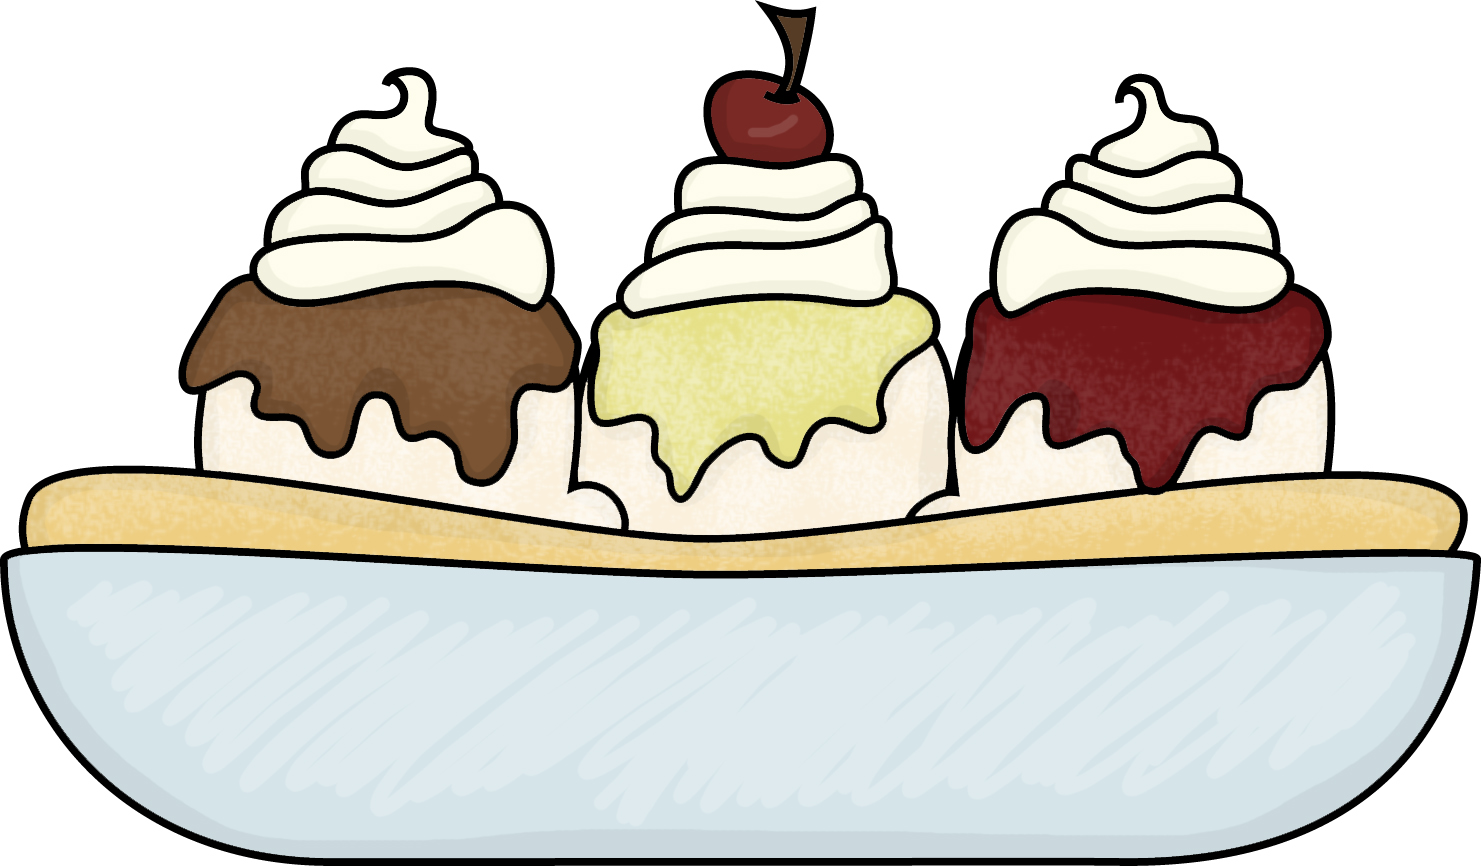 Ice Cream Treats Clip Art | Clipart Panda - Free Clipart Images for Bowl Of Ice Cream Clipart Black And White  193tgx